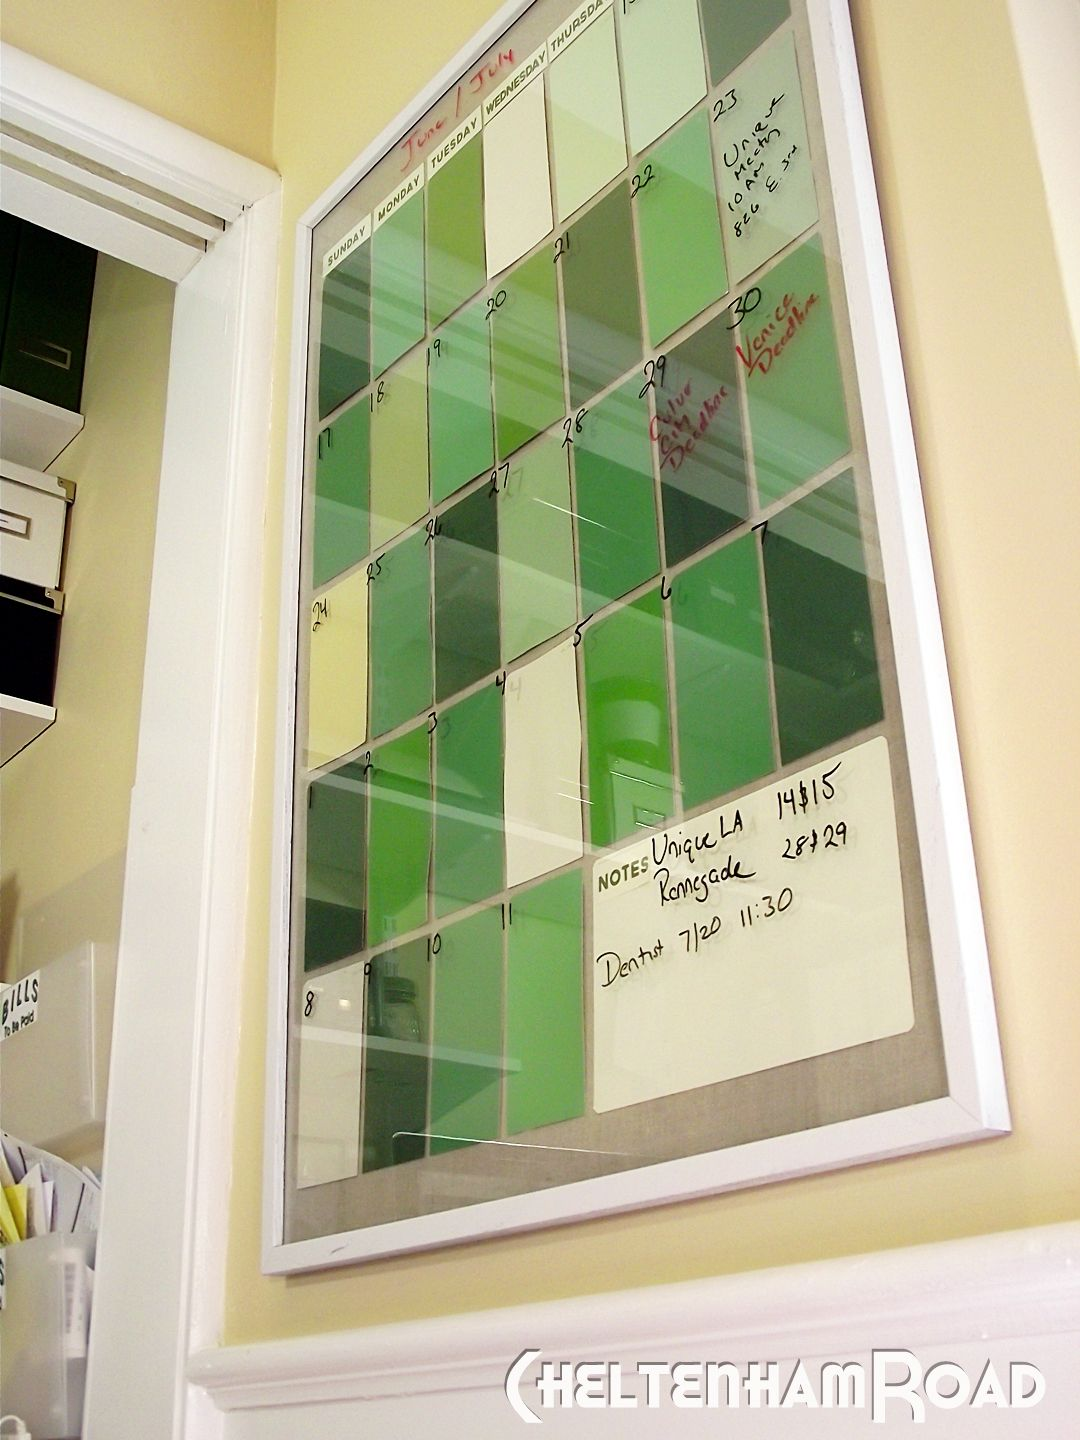 Amazing DIY Dry Erase Calendar Using Paint Chips! Soooo Smart Pictures Gallery